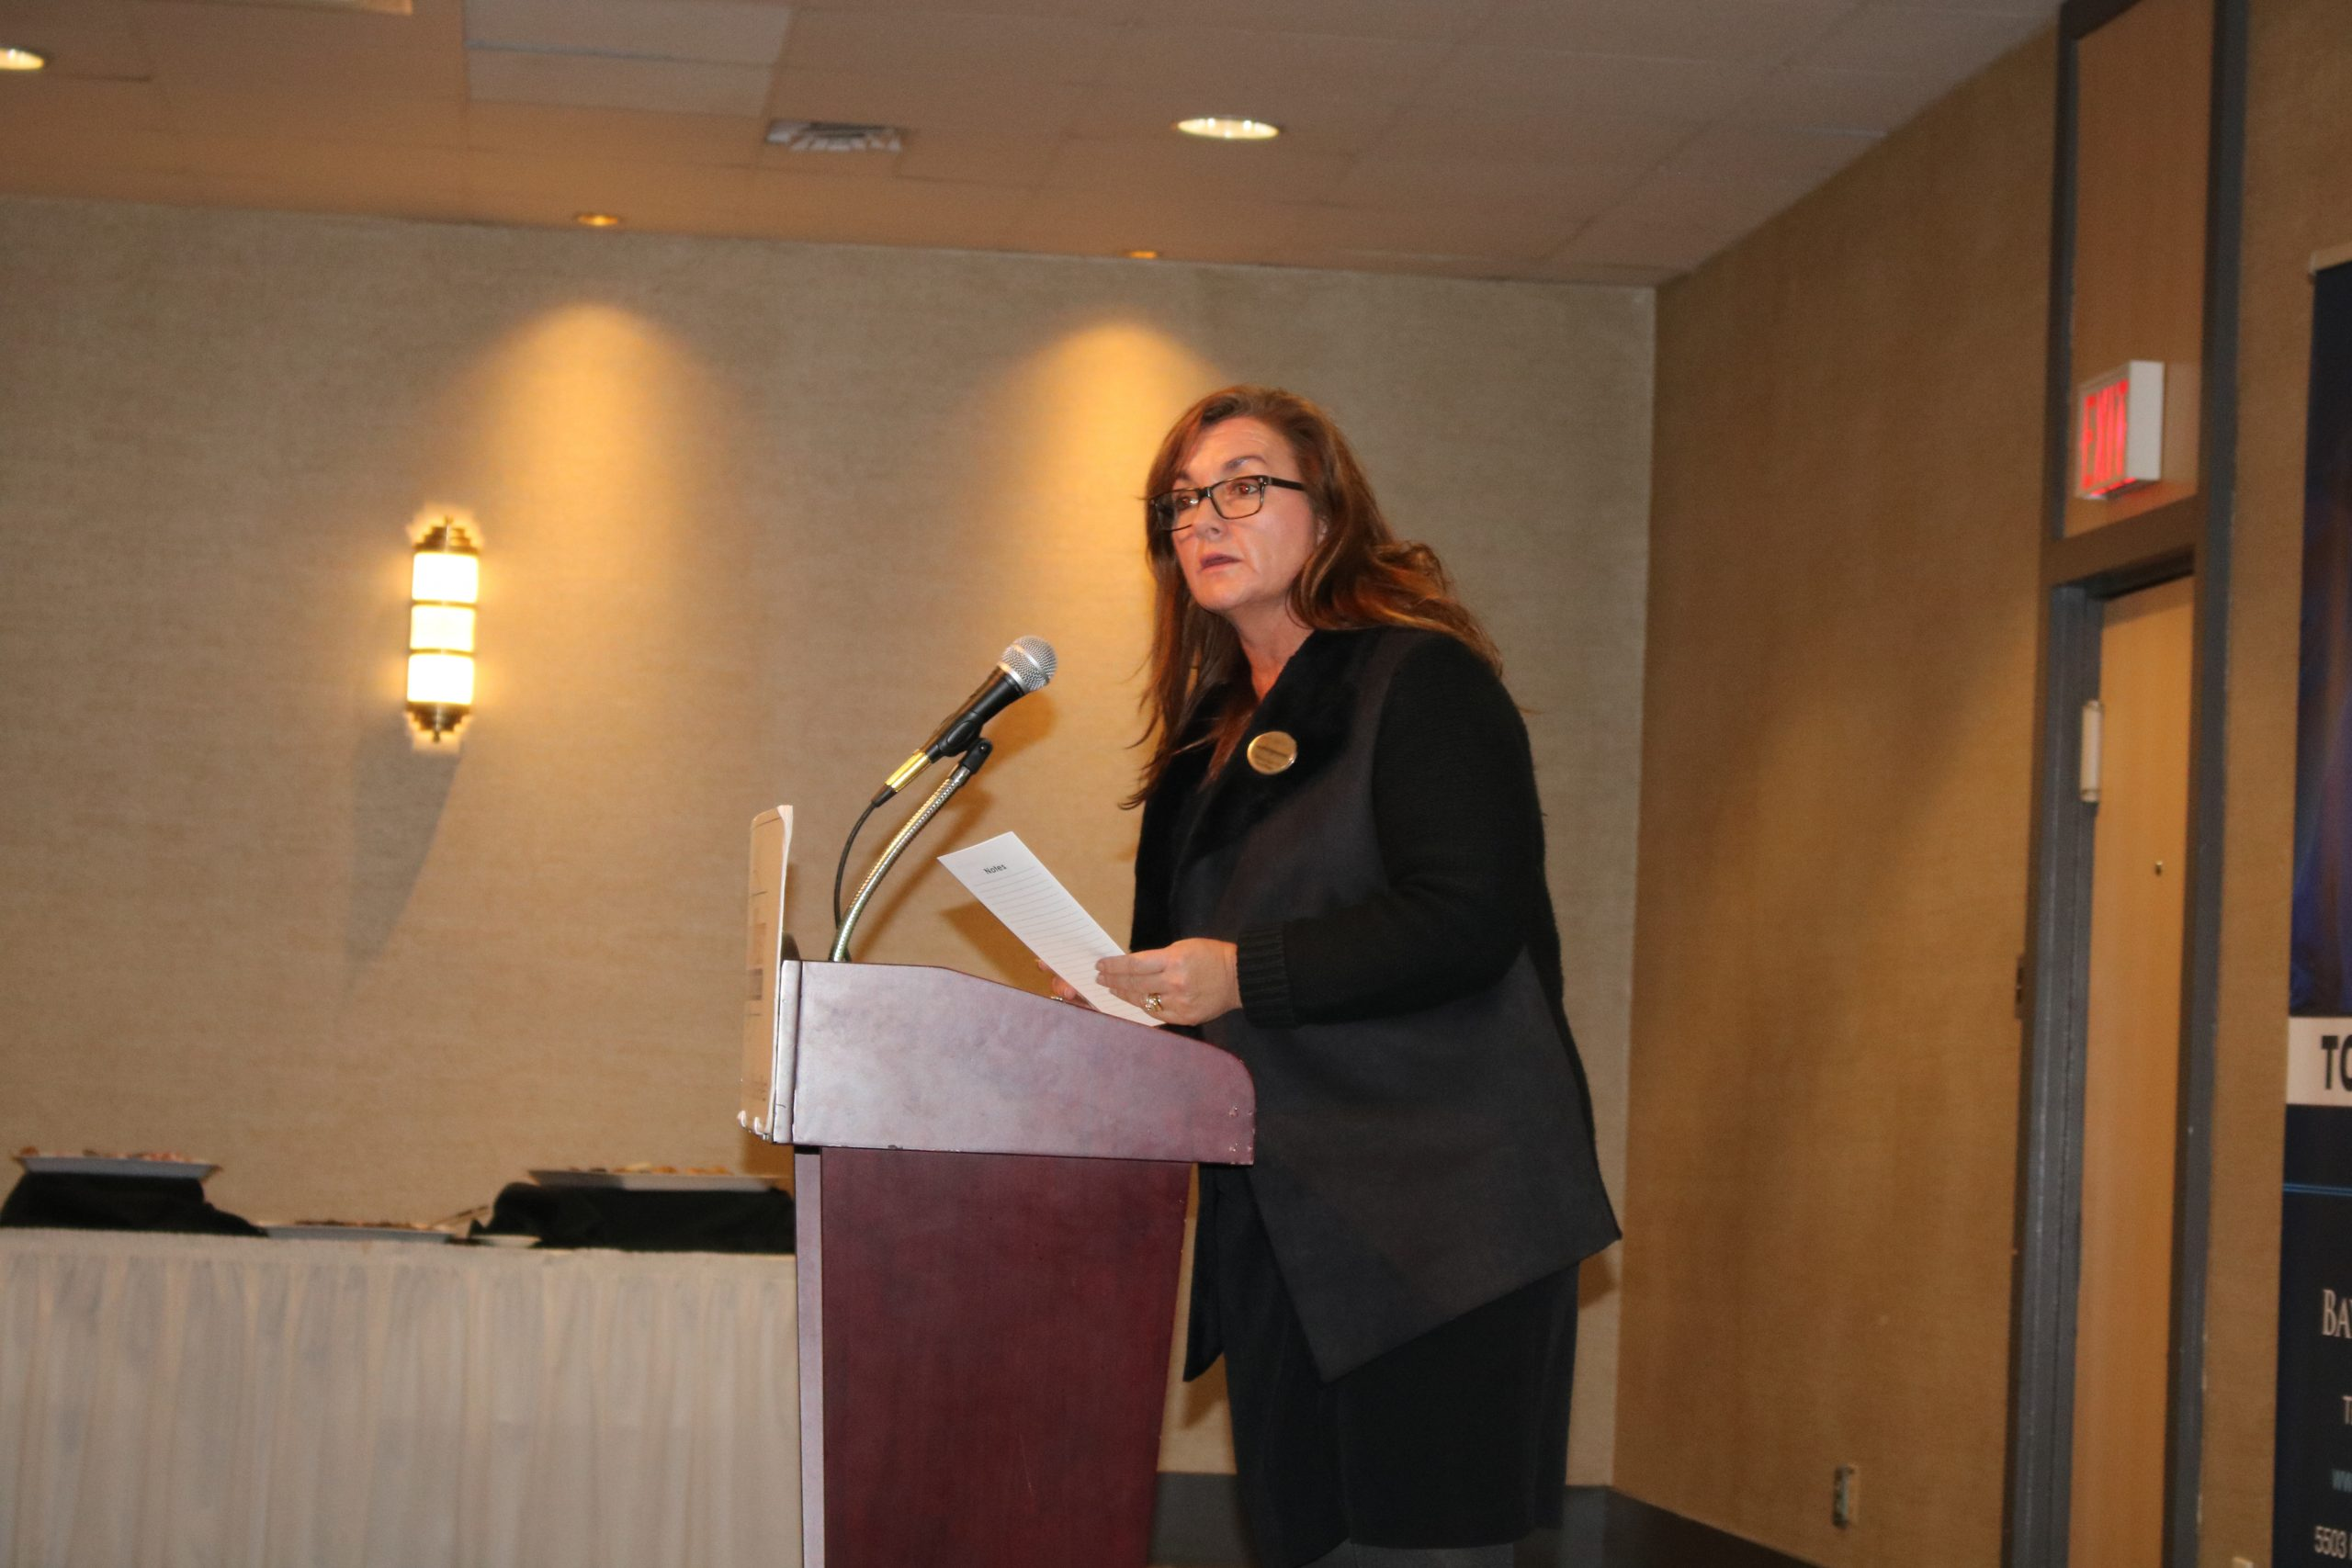 Quinte West Chamber Manager reacts to Ontario fiscal update